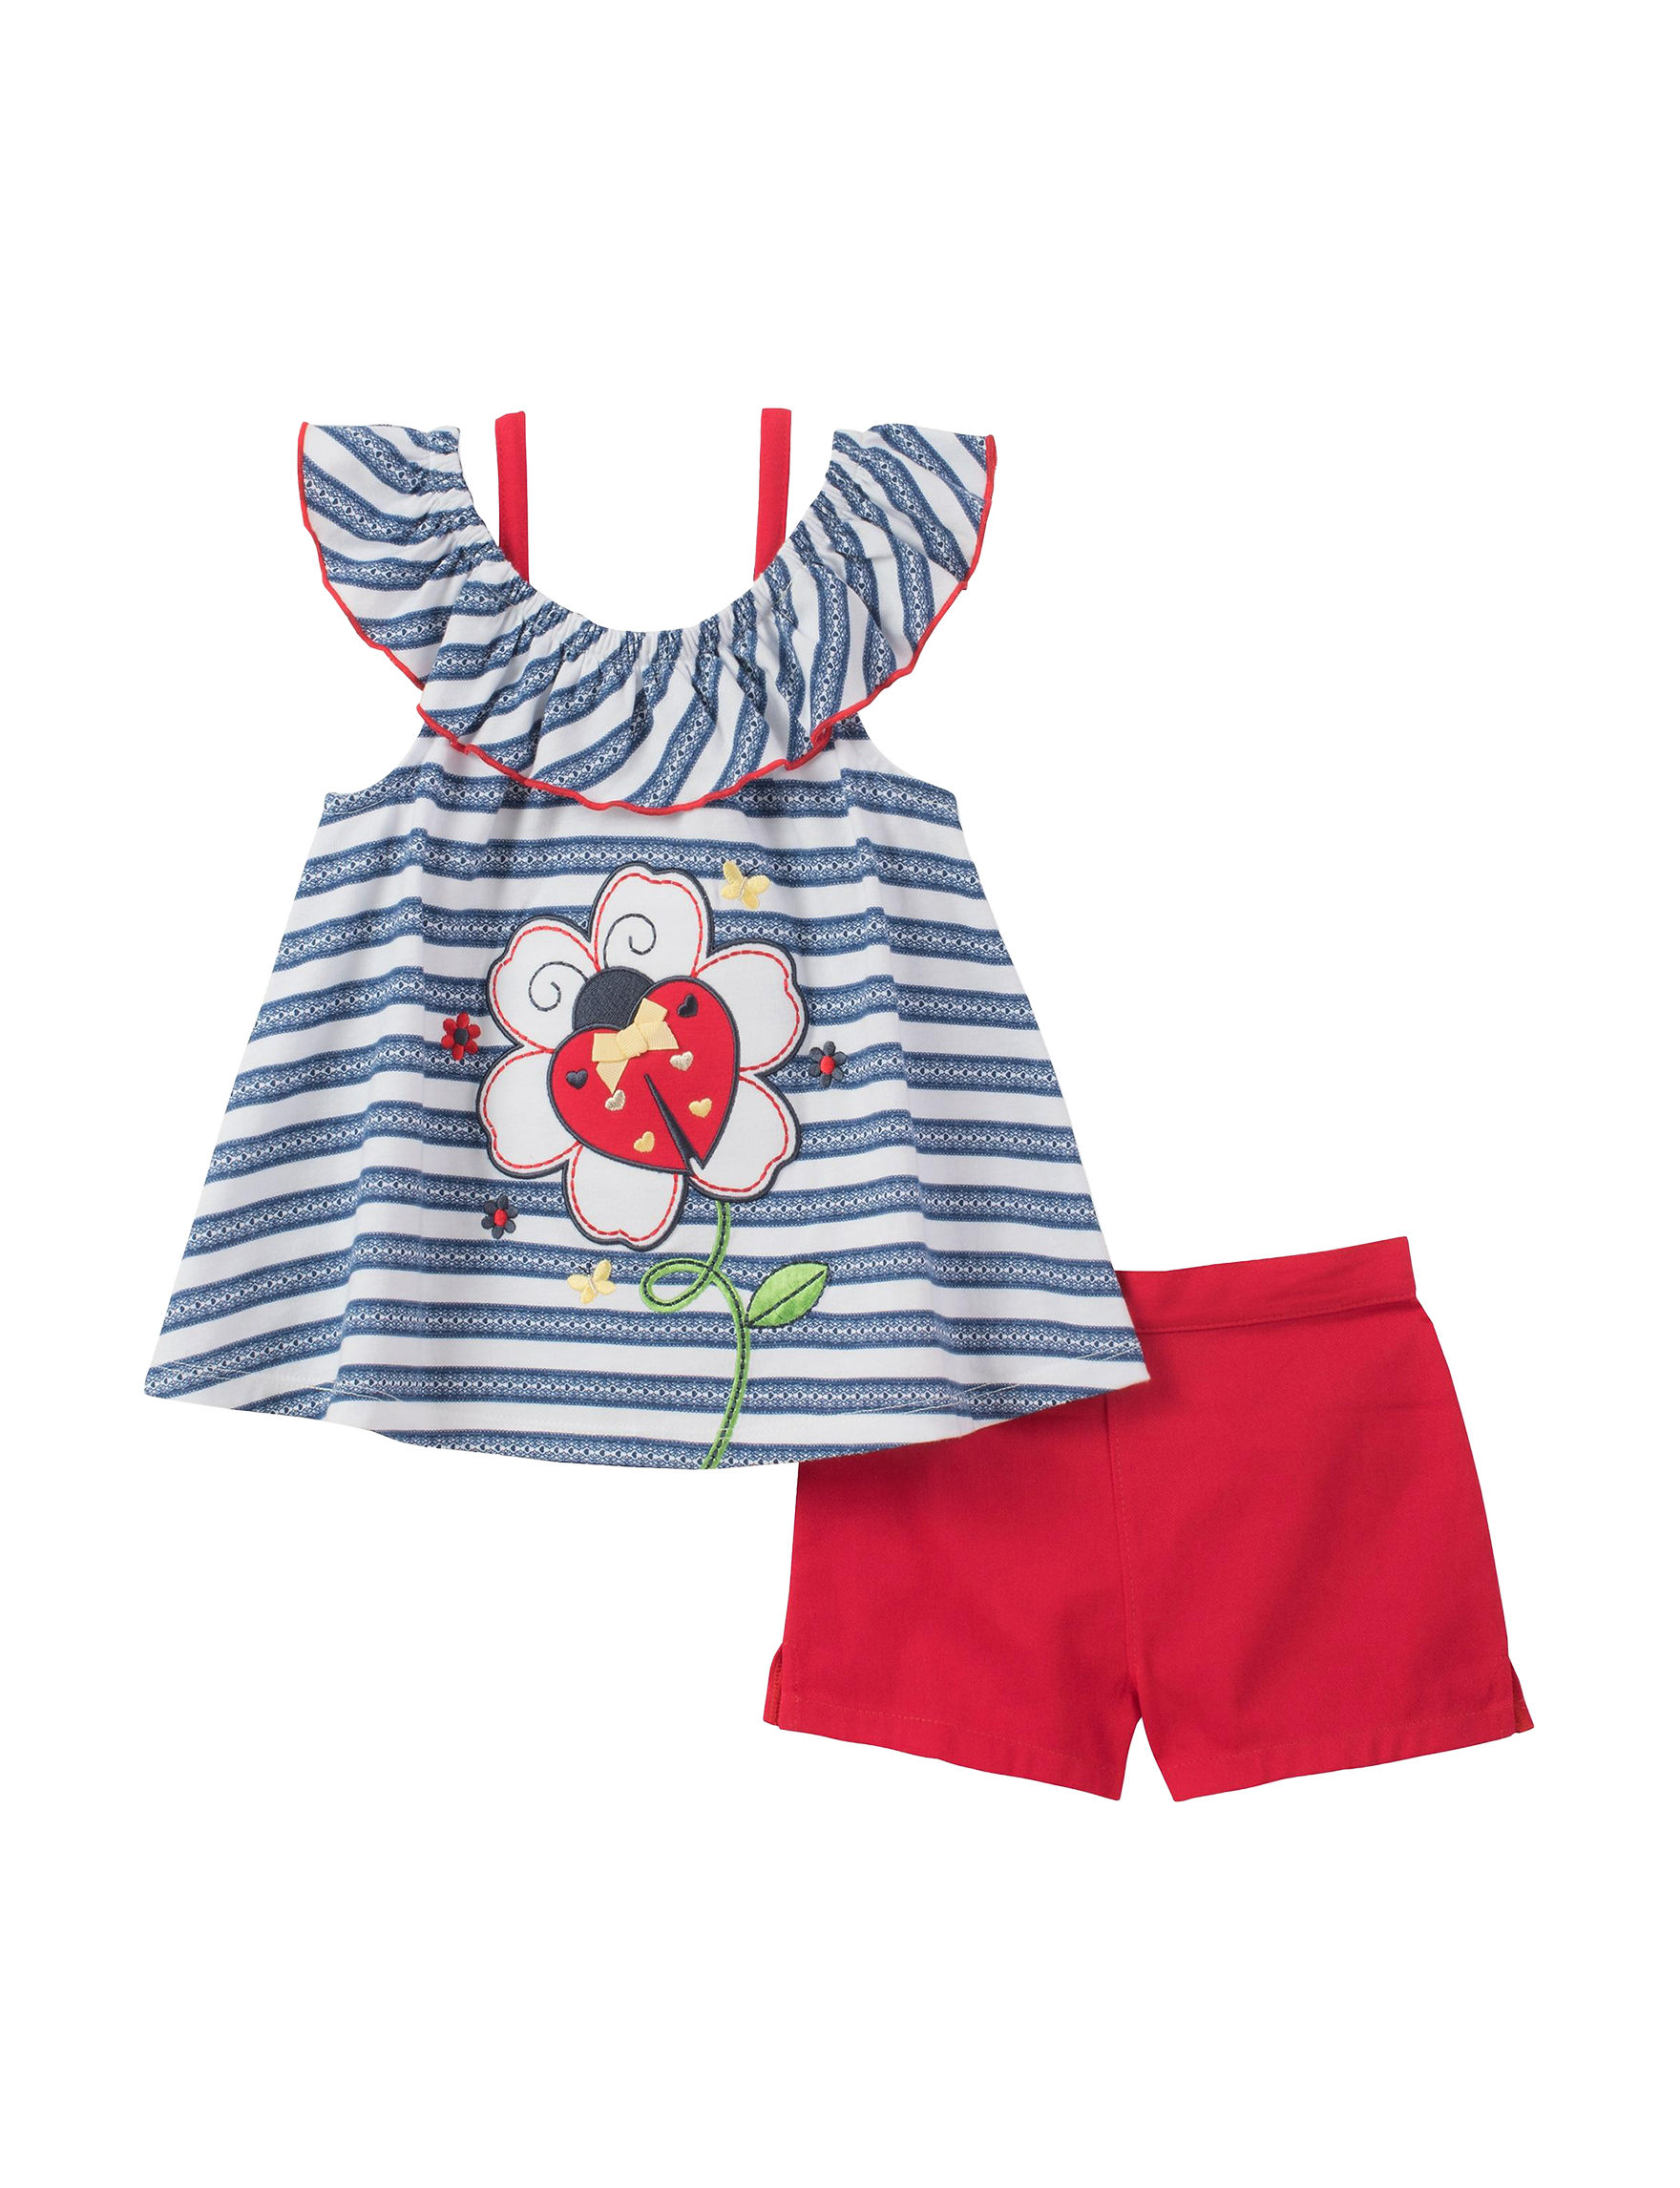 Kids Headquarters Blue / White / Red